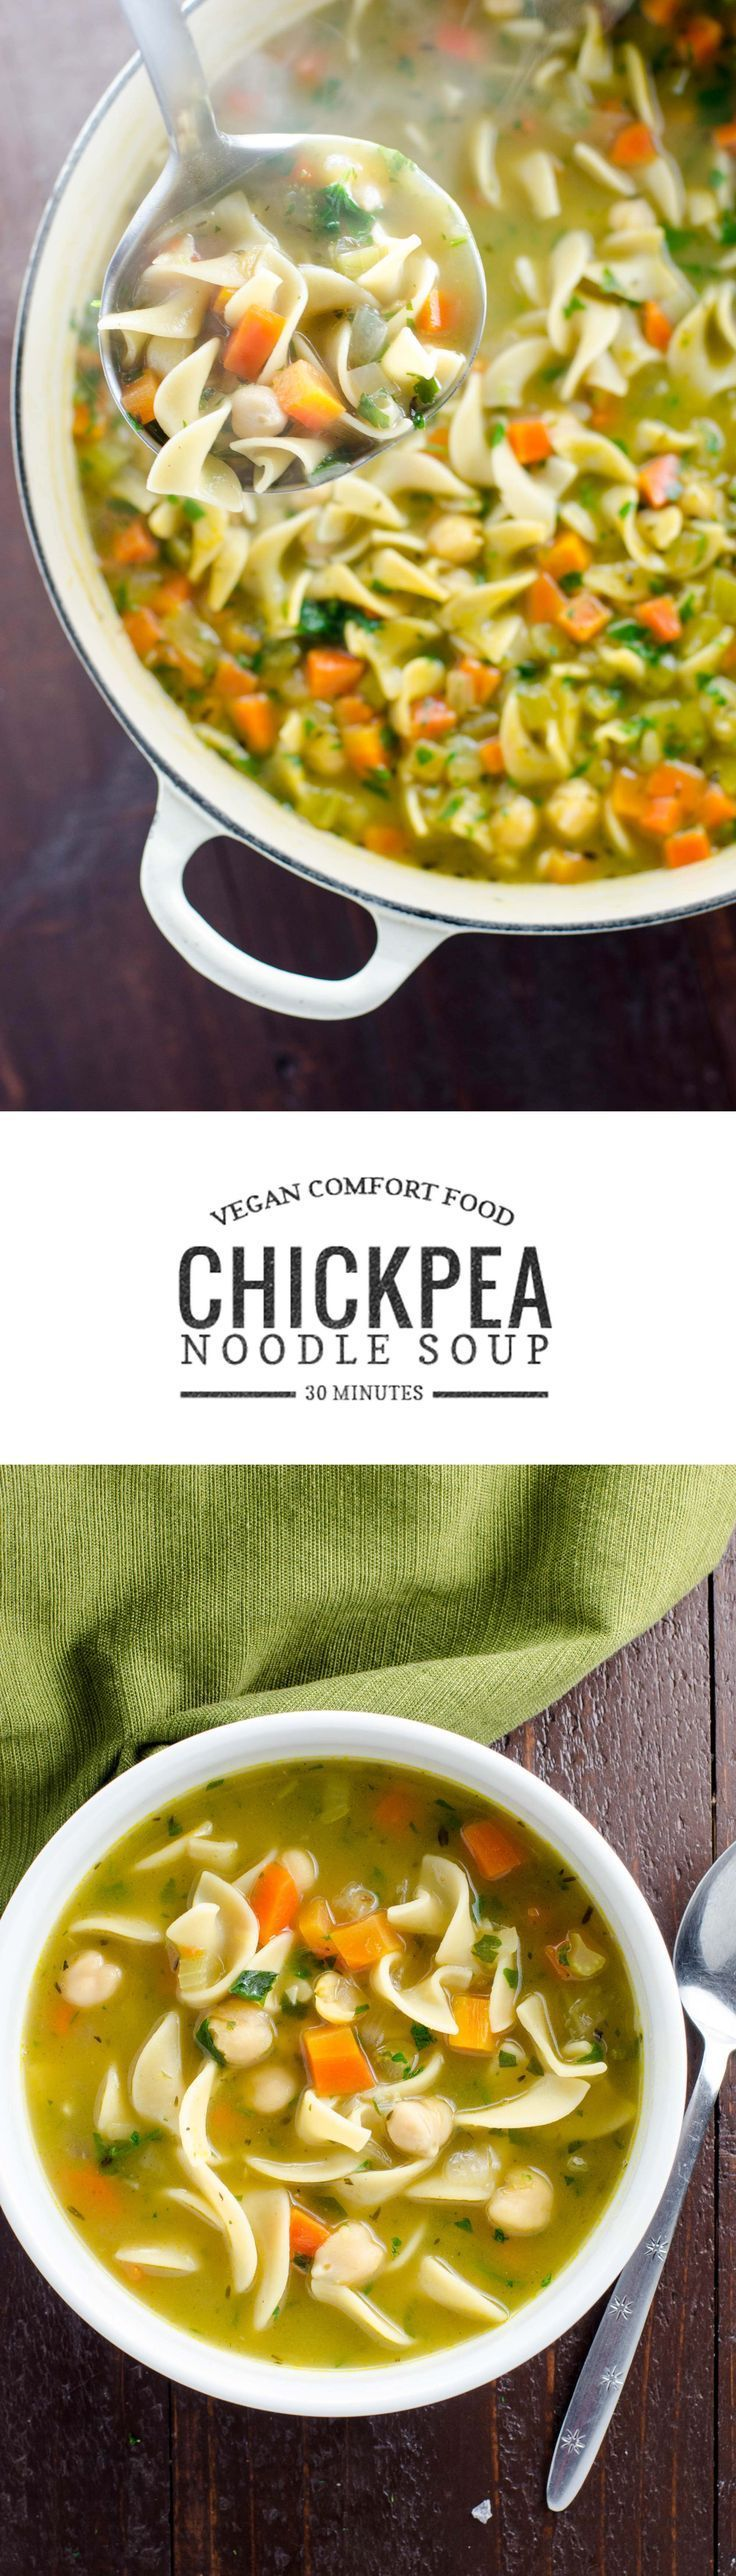 Chickpea noodle soup is vegan comfort food at its finest. Warming, easy to make and ready in 30 minutes.